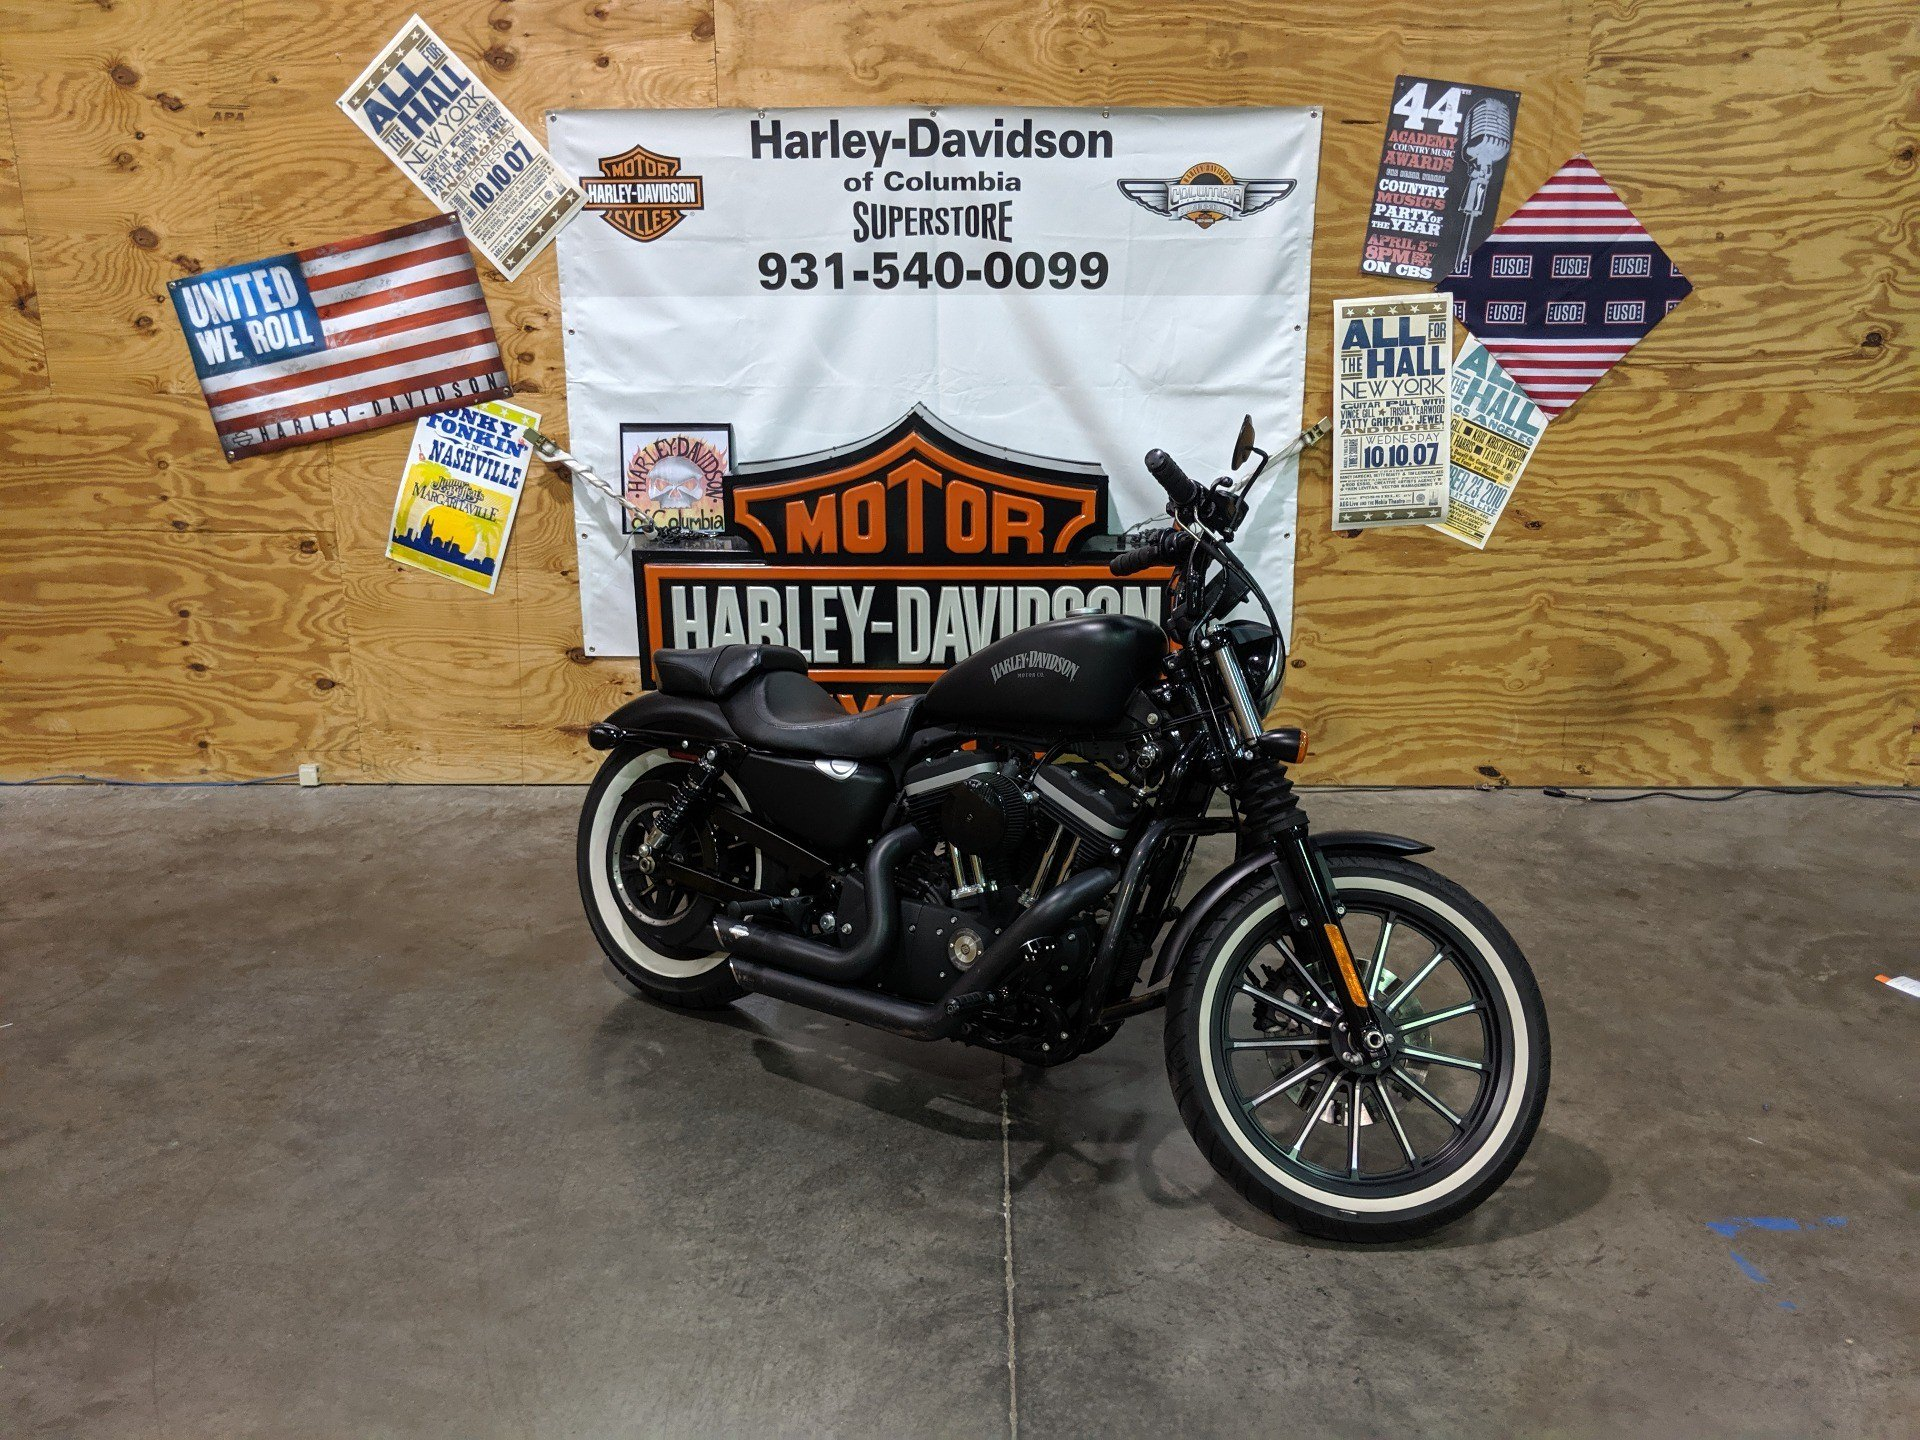 2013 Harley-Davidson XL883N in Columbia, Tennessee - Photo 2